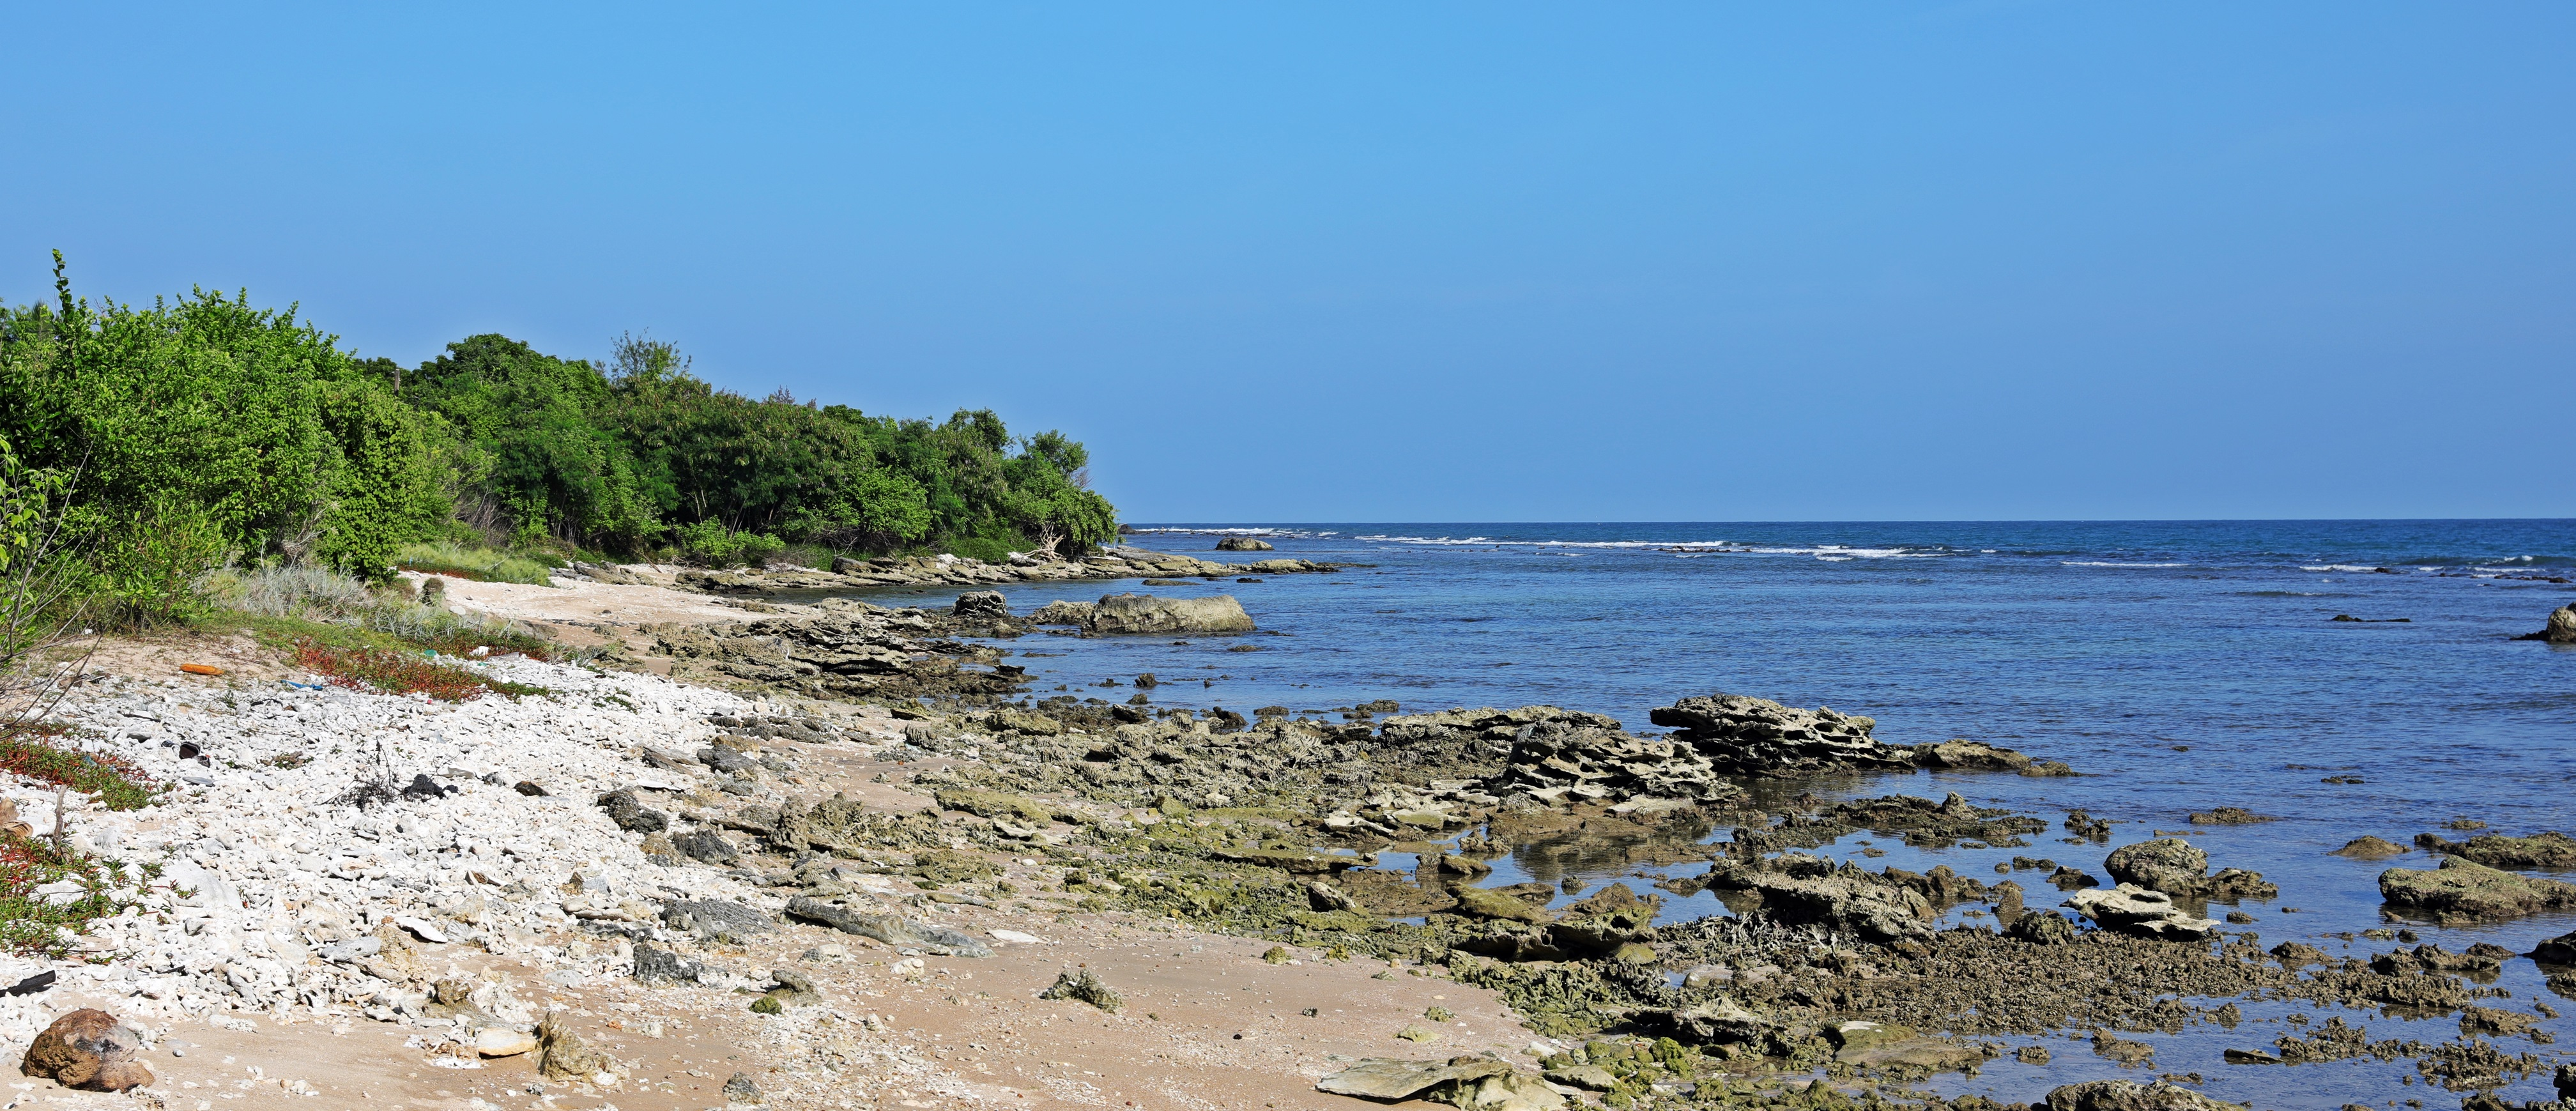 Rocky point between Kalkudah and Pasikudah beaches